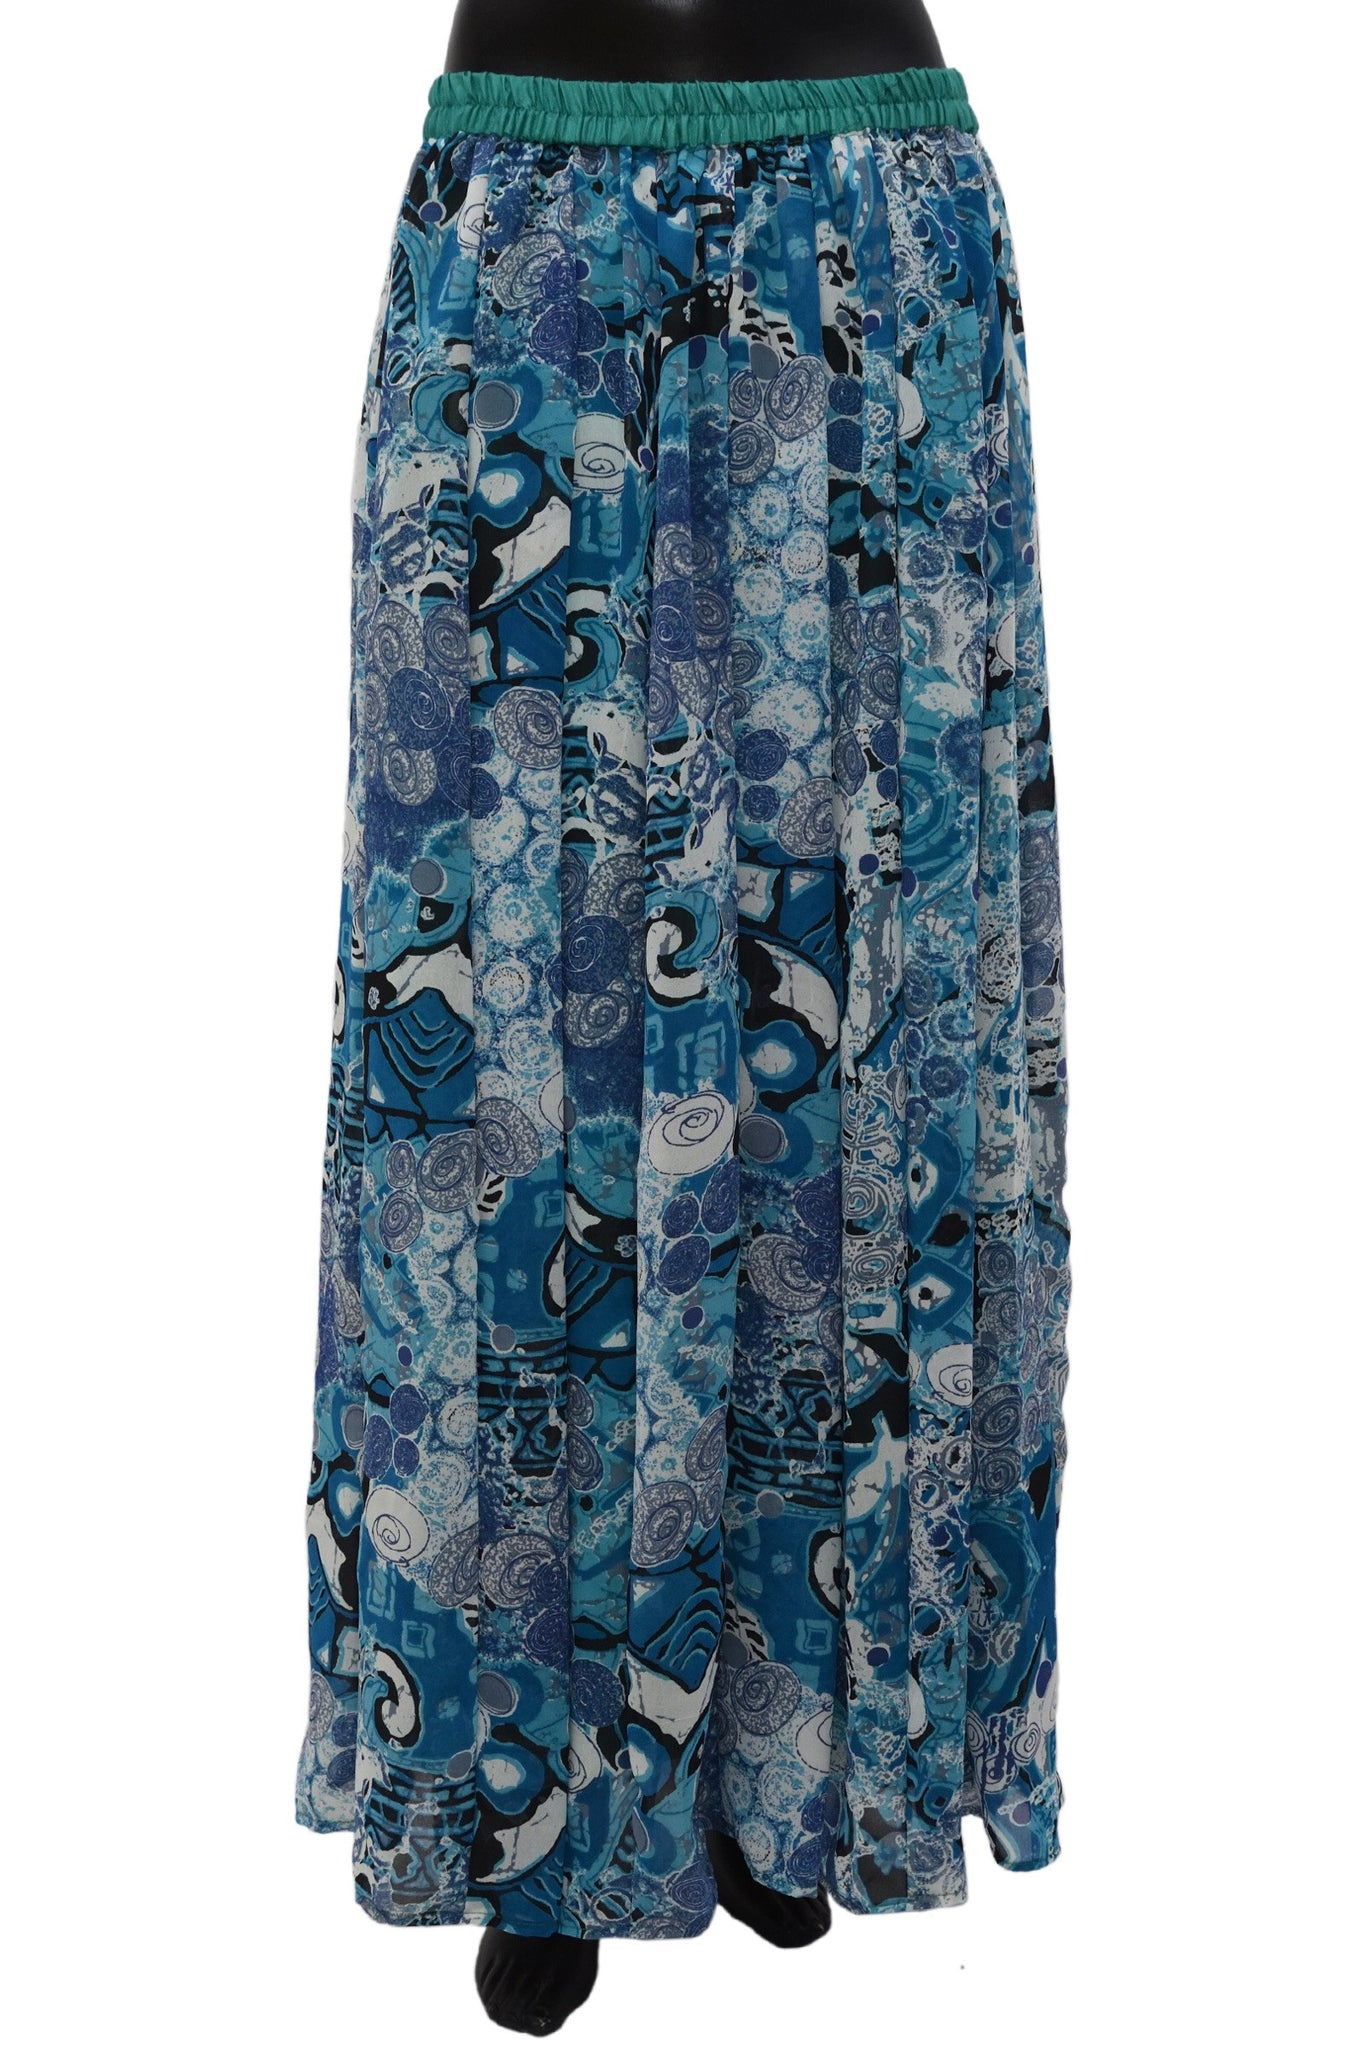 Printed long skirt #fdn0478 /10